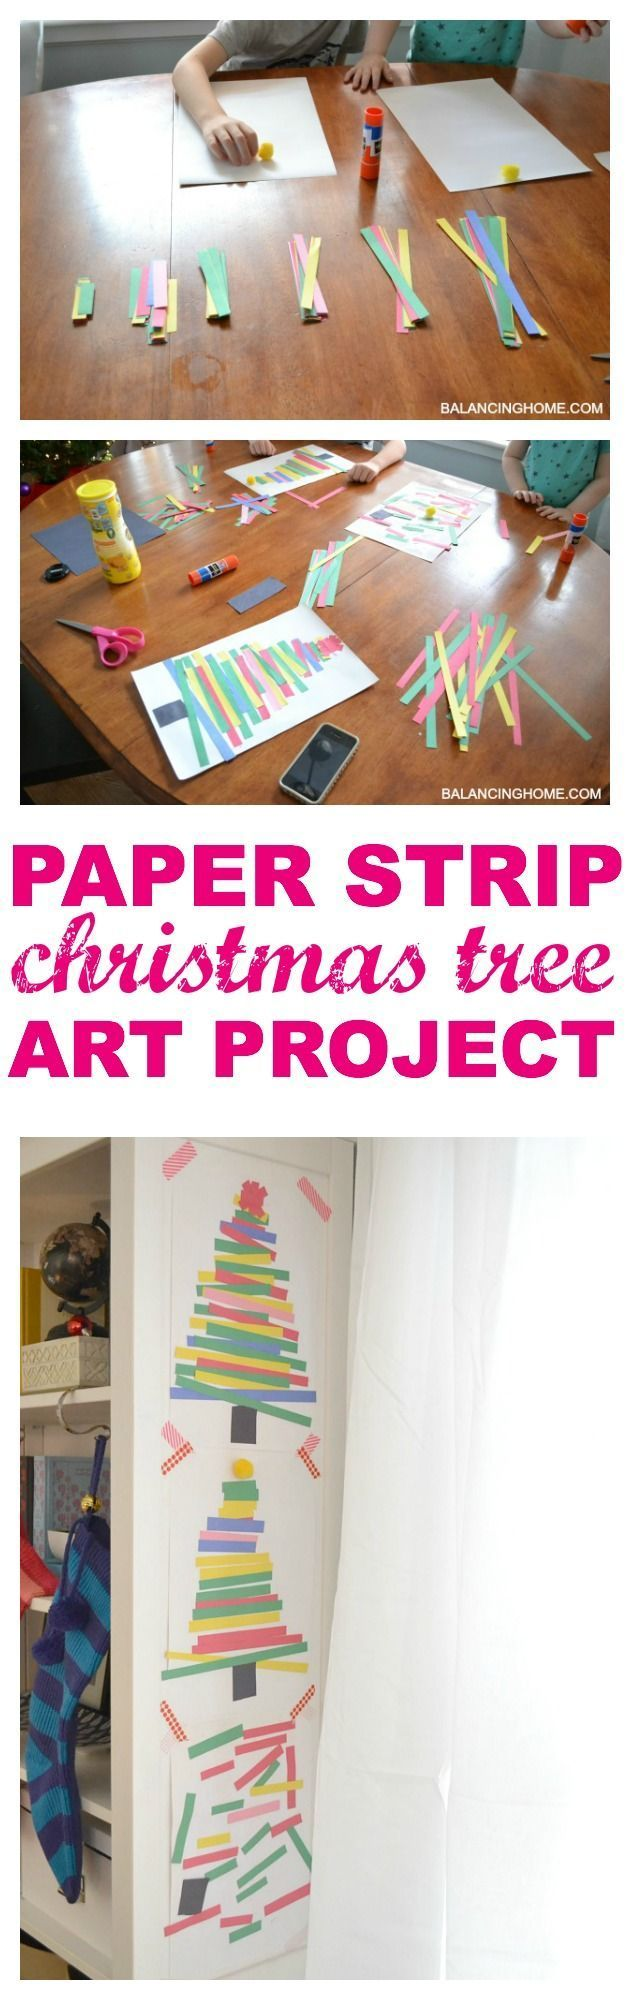 Christmas crafts for kids! Paper strip Christmas tree art. A fun and simple art project for the kids and there is even some learning involved!